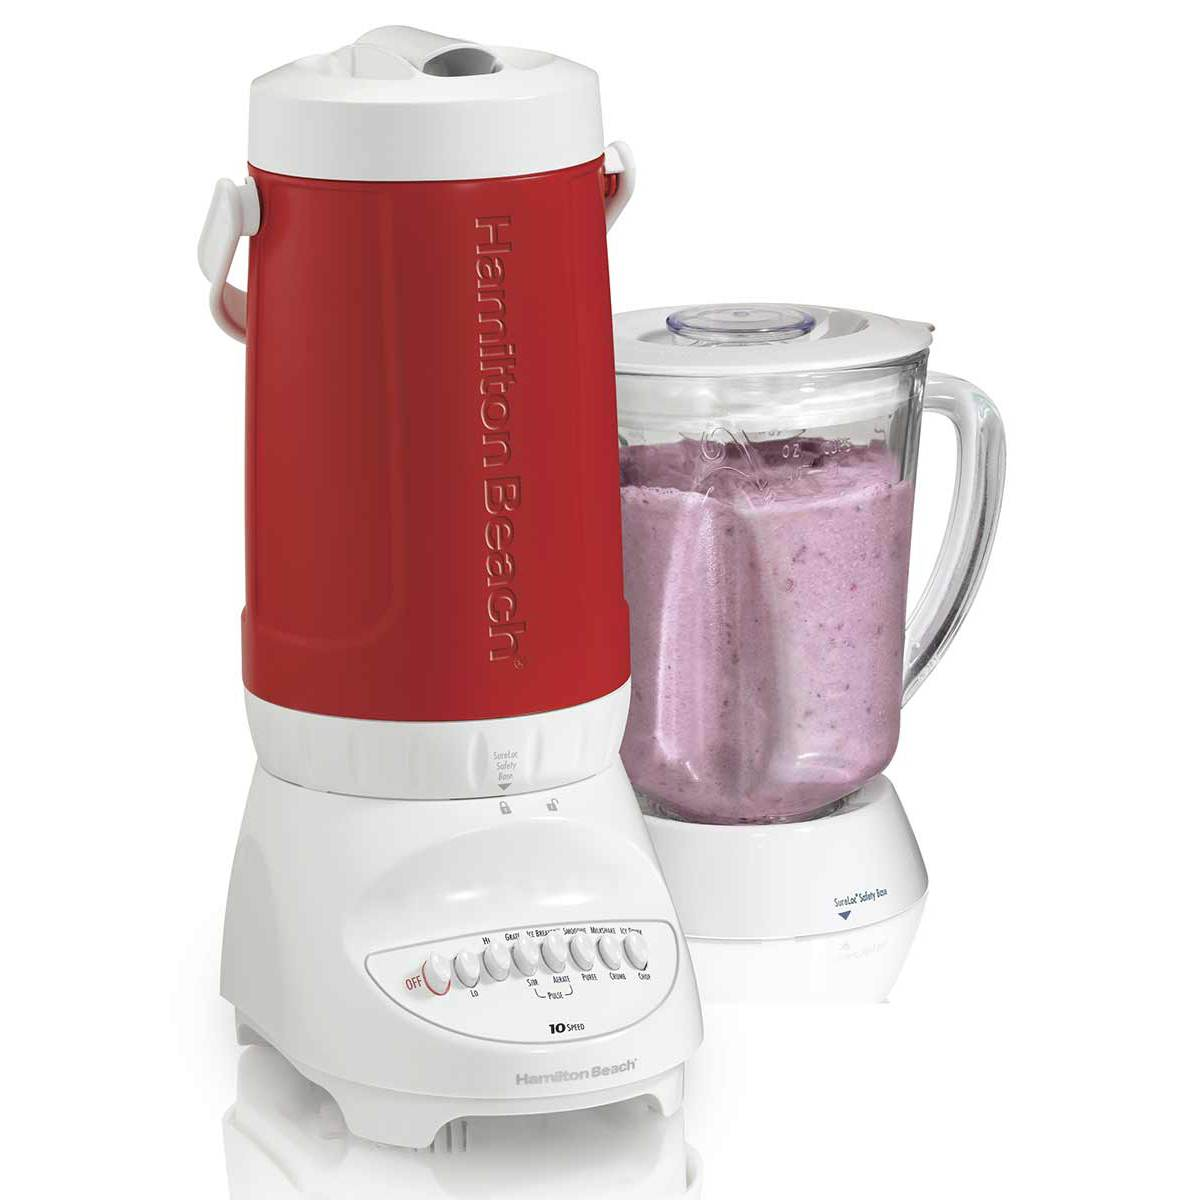 Thermal Cooler Plus 10 Speed Blender (50713)